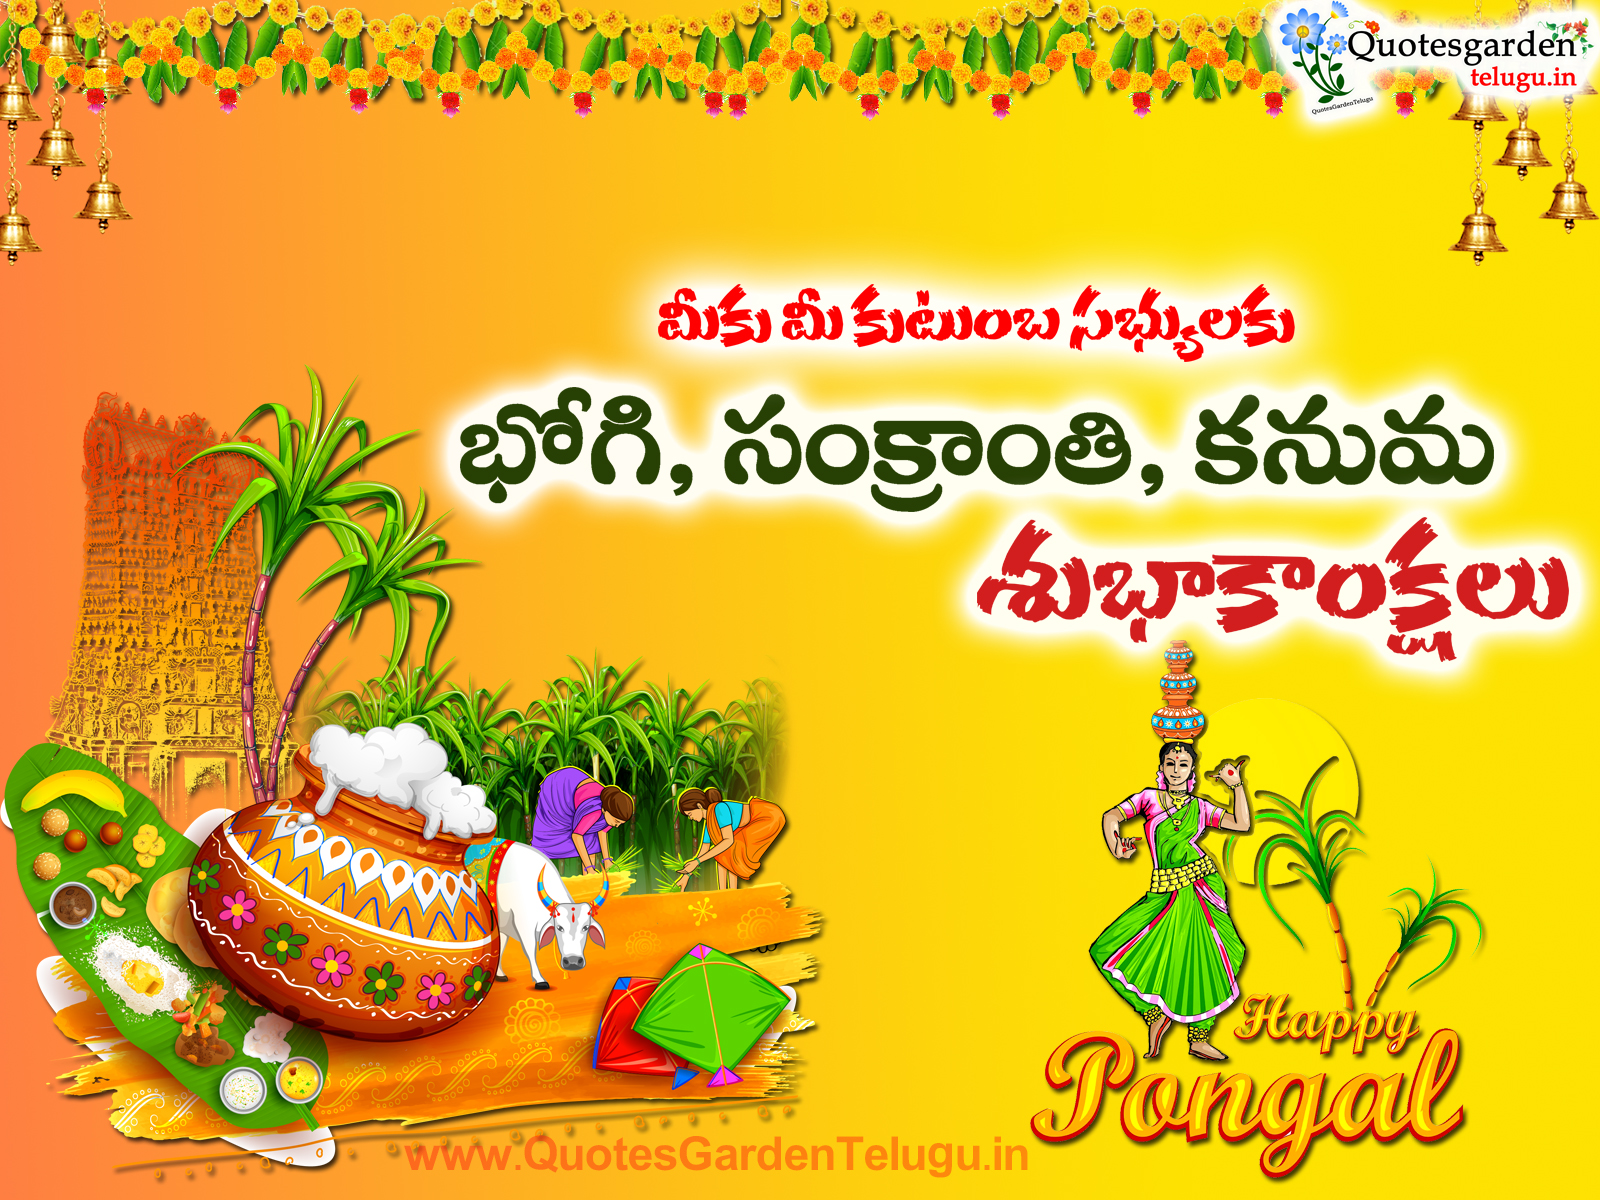 Telugu Sankranthi Greetings wishes images free downloads